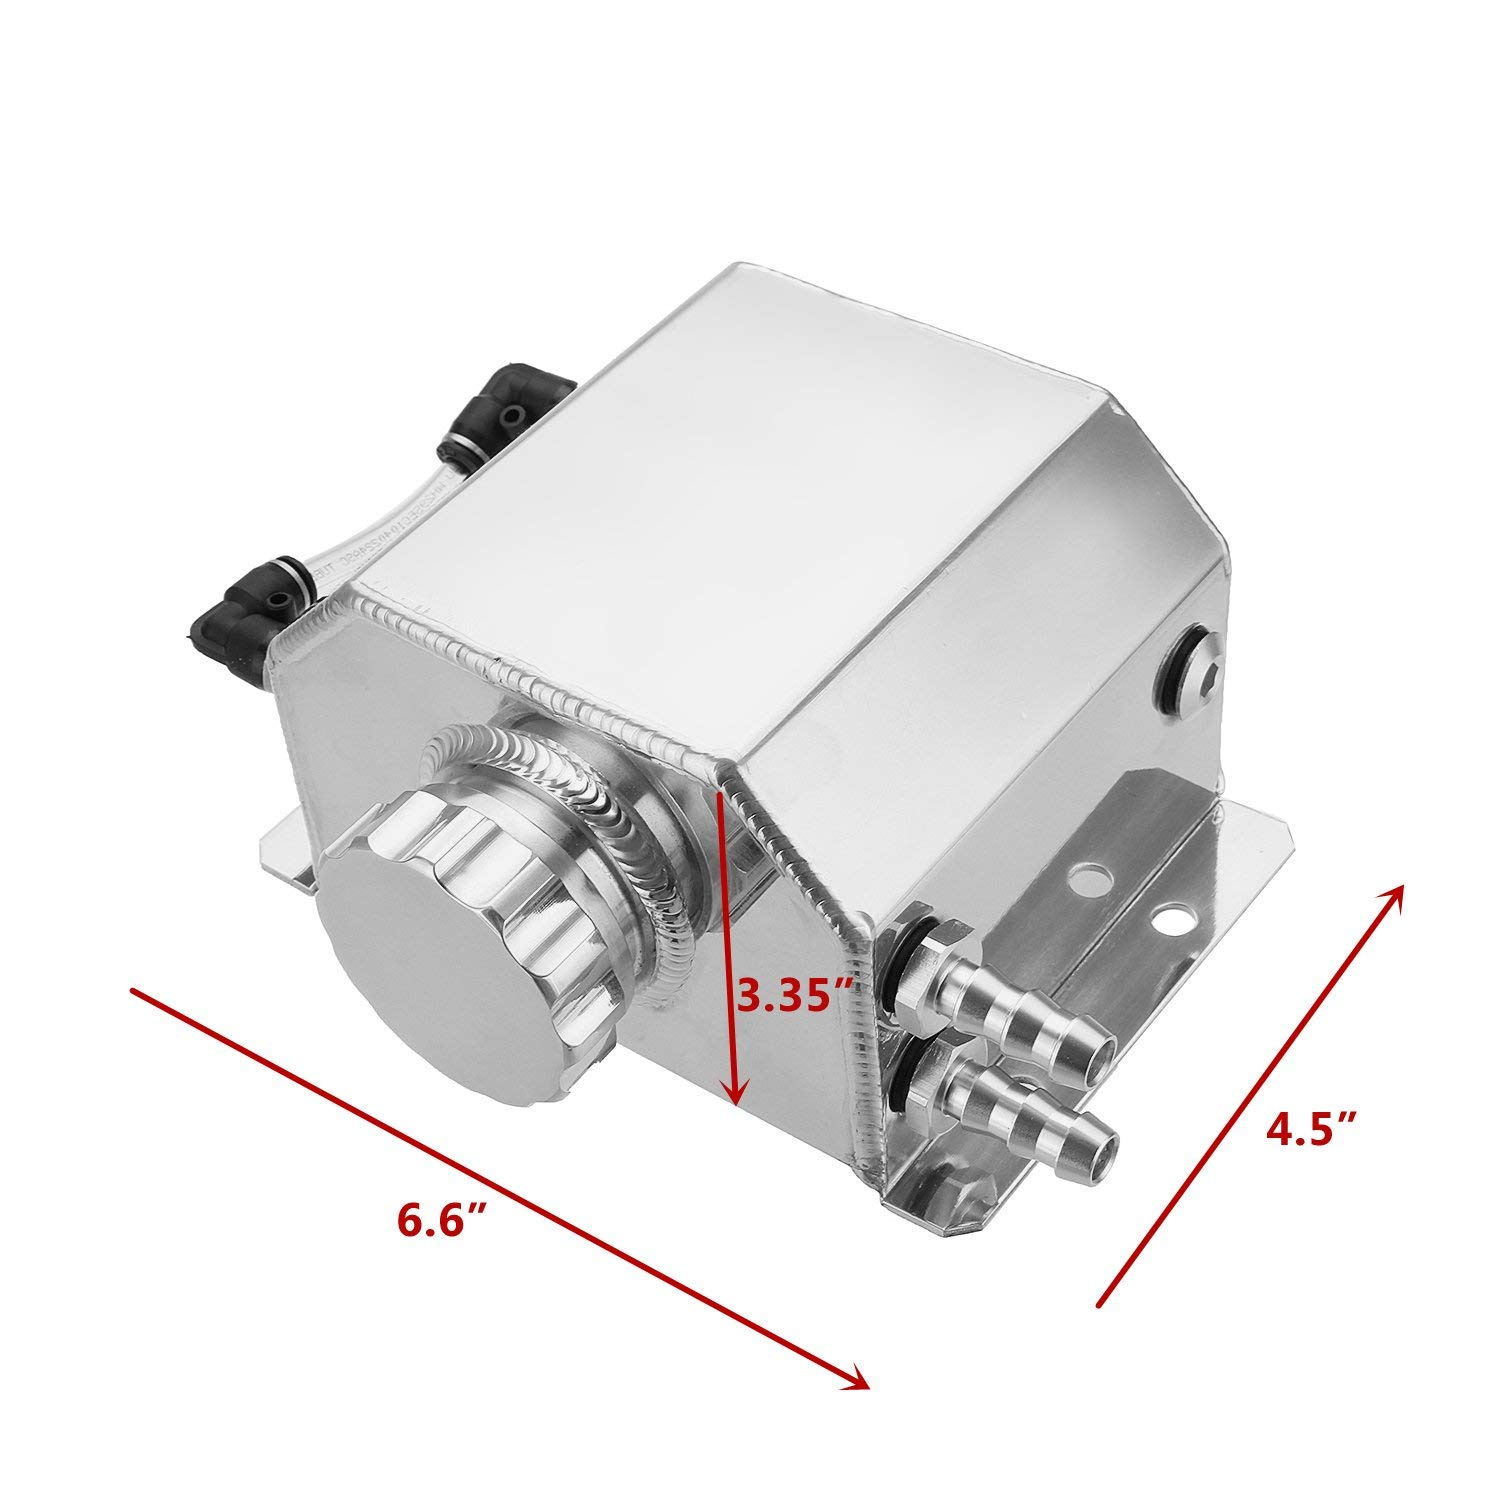 Silver Hwbnde Coolant Overflow Tank Bottle Recovery Reservoir Aluminum JDM Container Universal 1L Water Radiator